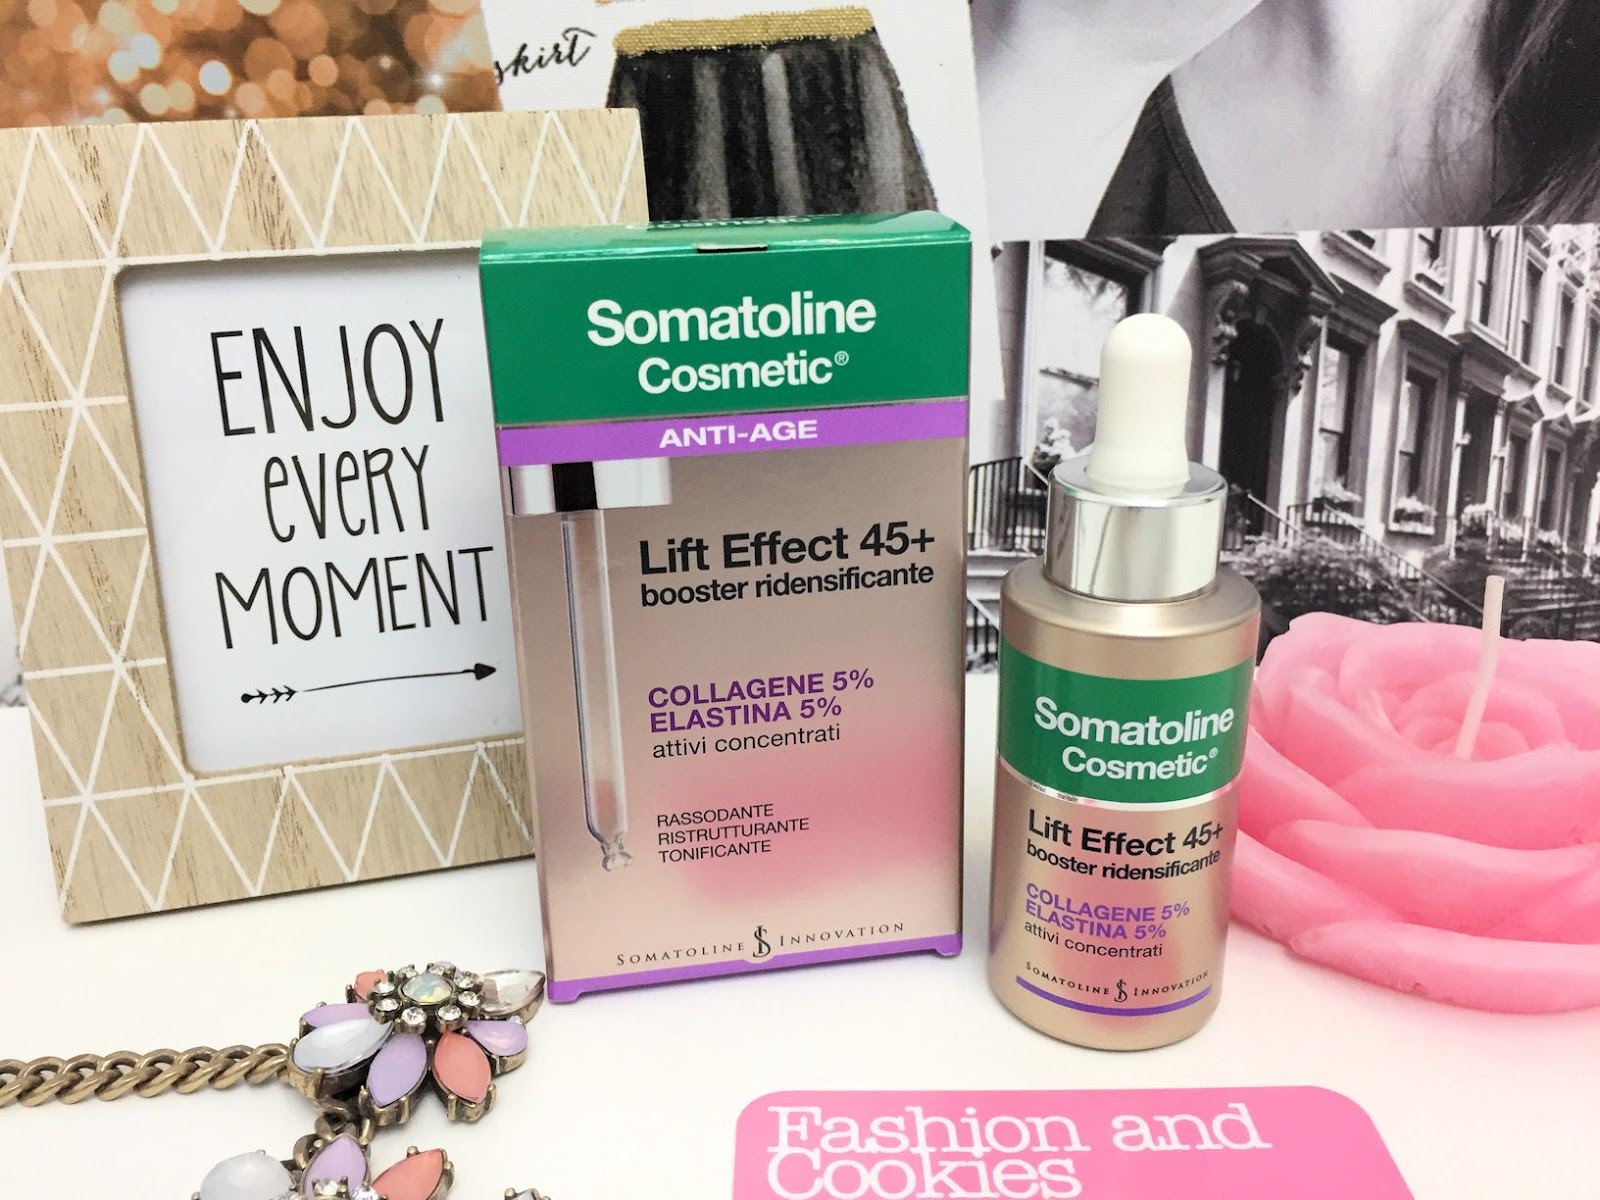 Somatoline Cosmetic Lift Effect 45+ su Fashion and Cookies beauty blog, beauty blogger